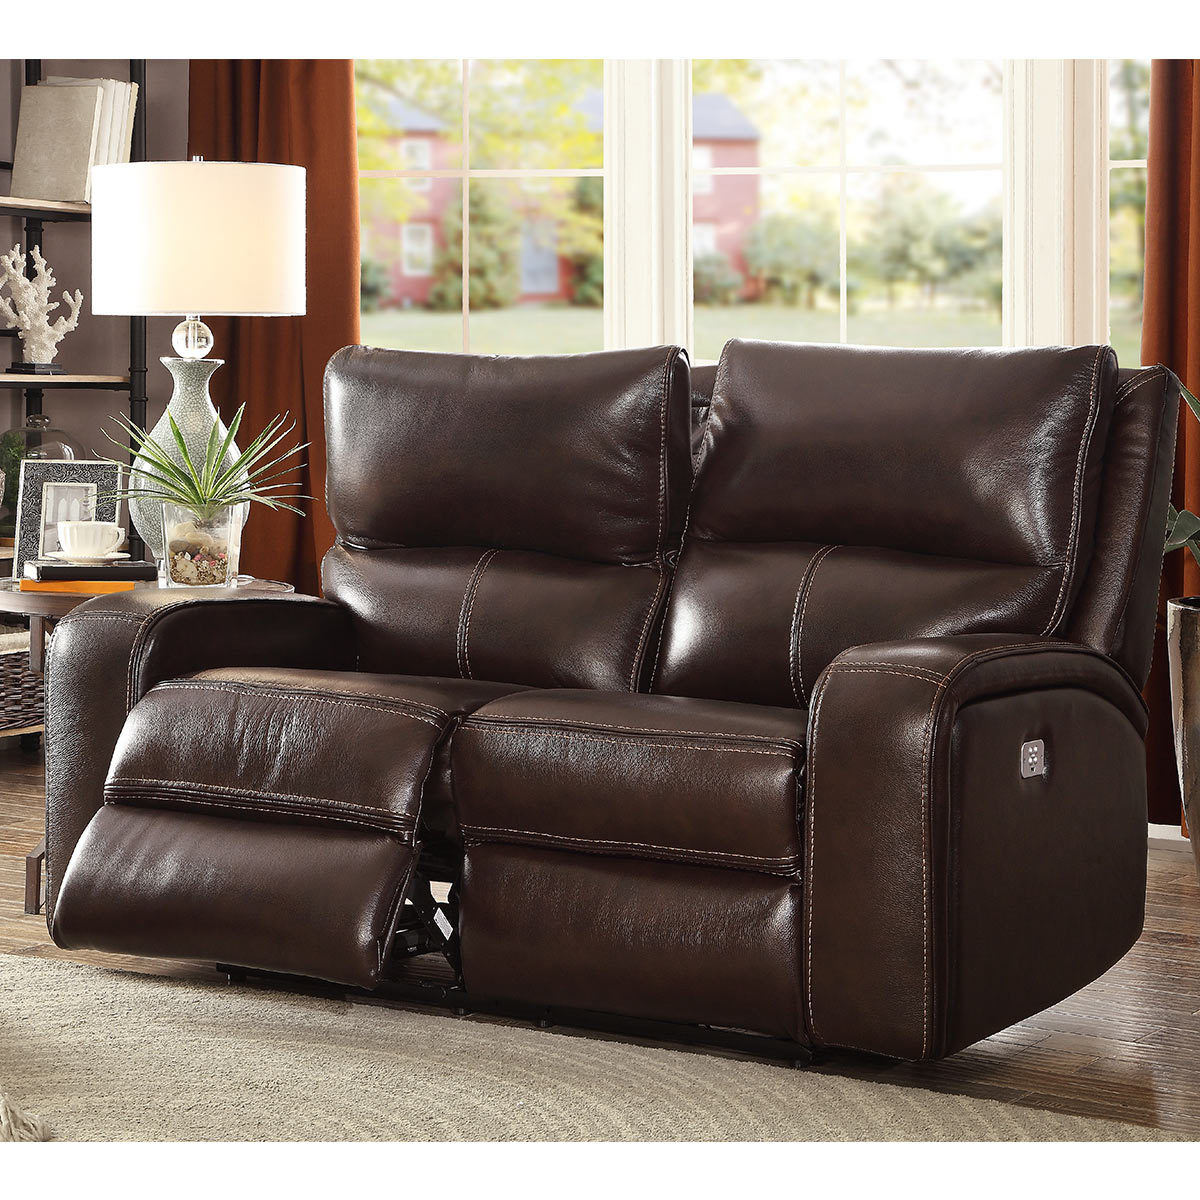 2 Seat Leather Reclining Sofa – Sofa Design Ideas For Current Contempo Power Reclining Sofas (View 14 of 15)